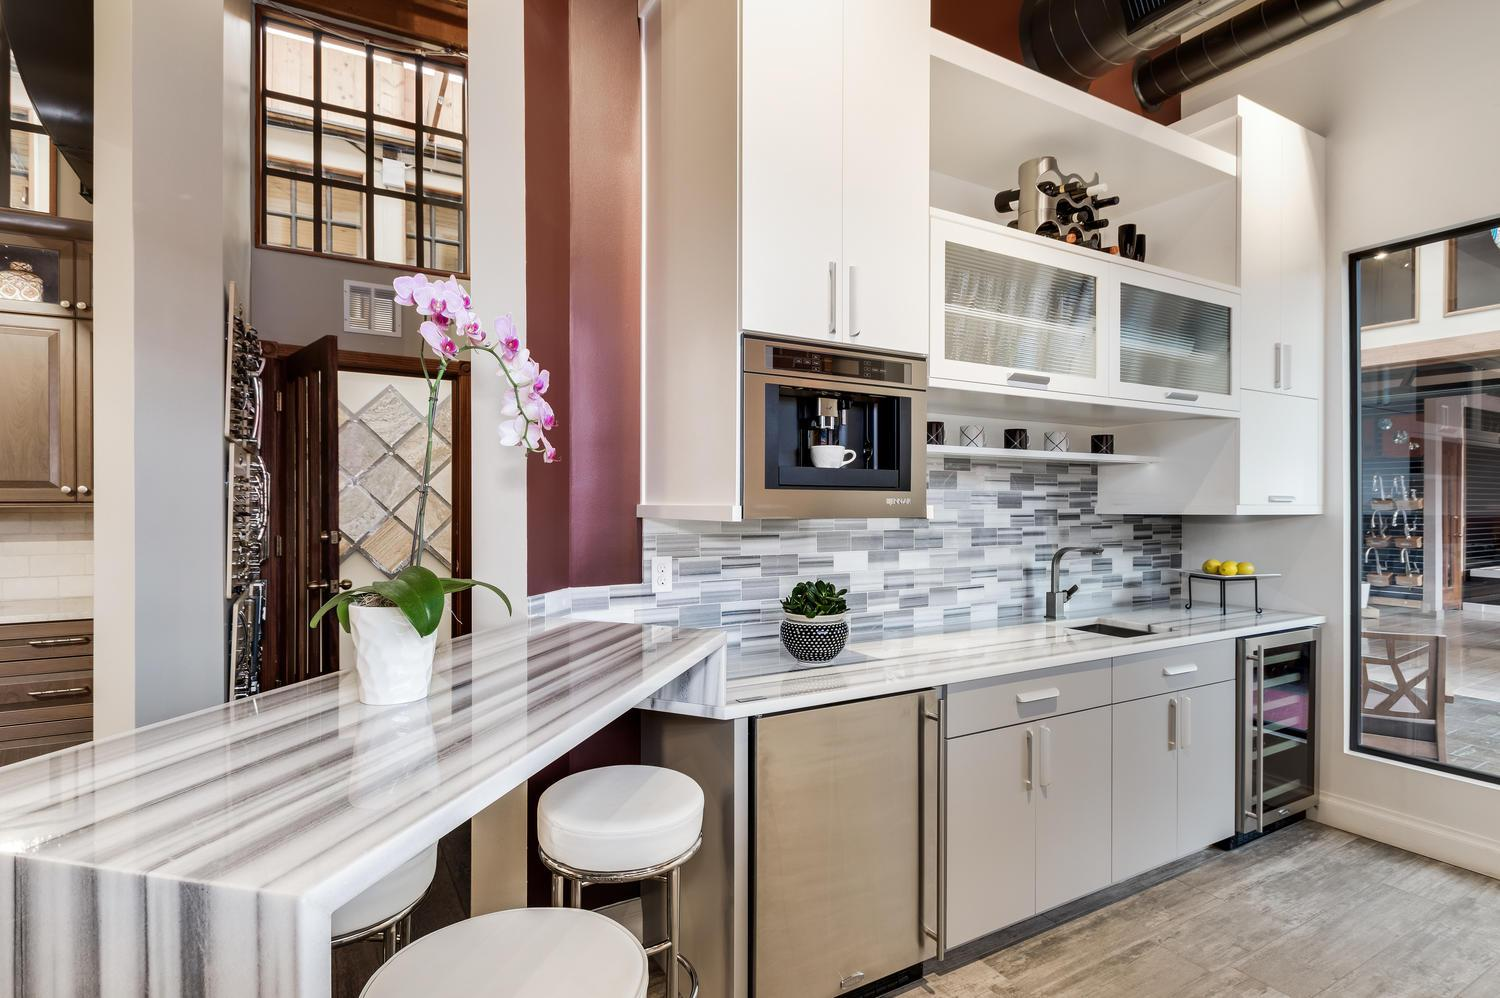 Kitchen Design Showroom Denver Co Showroom Denver Kitchen Remodel Basement Finishing Denver